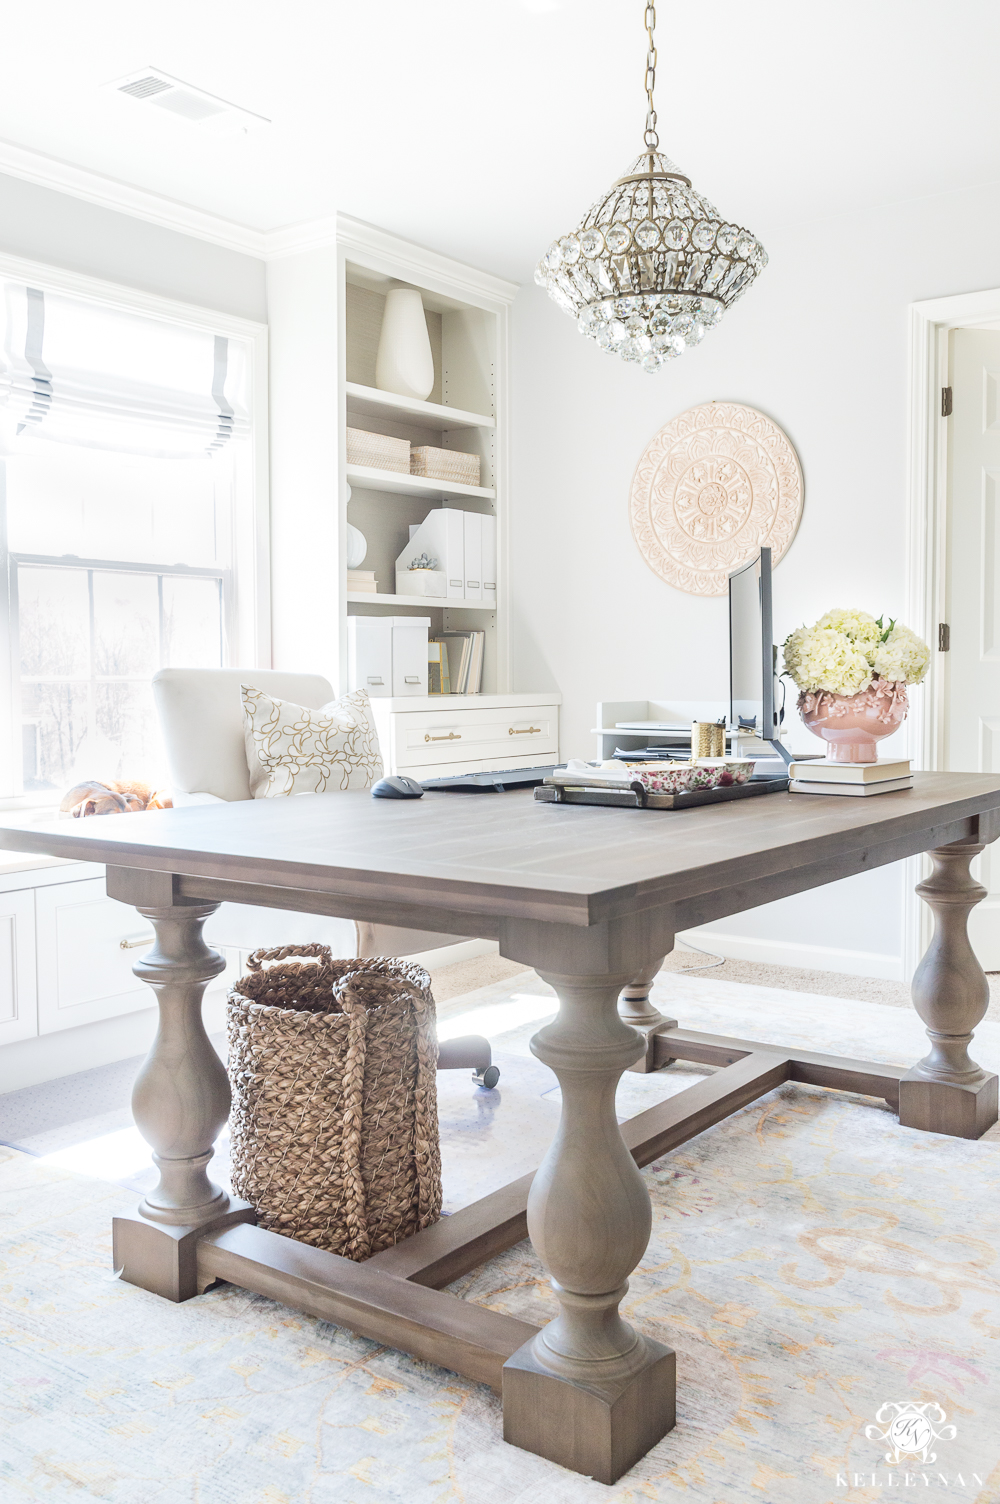 Home Office with Table for Desk and Chandelier - Kelley Nan